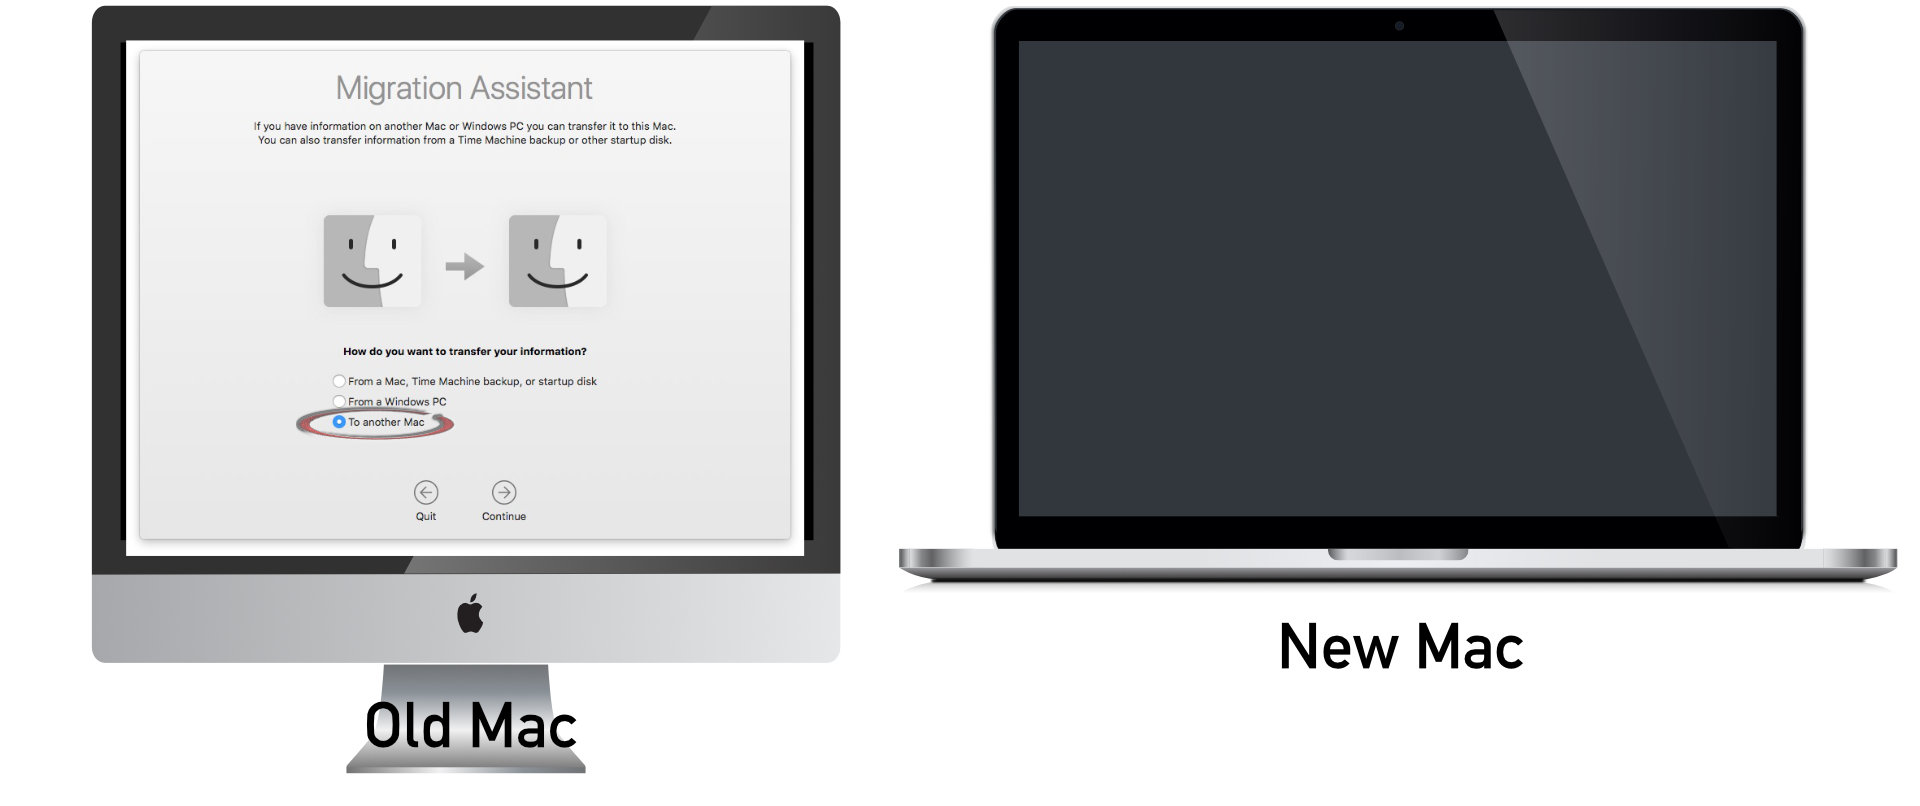 Click on To another Mac.